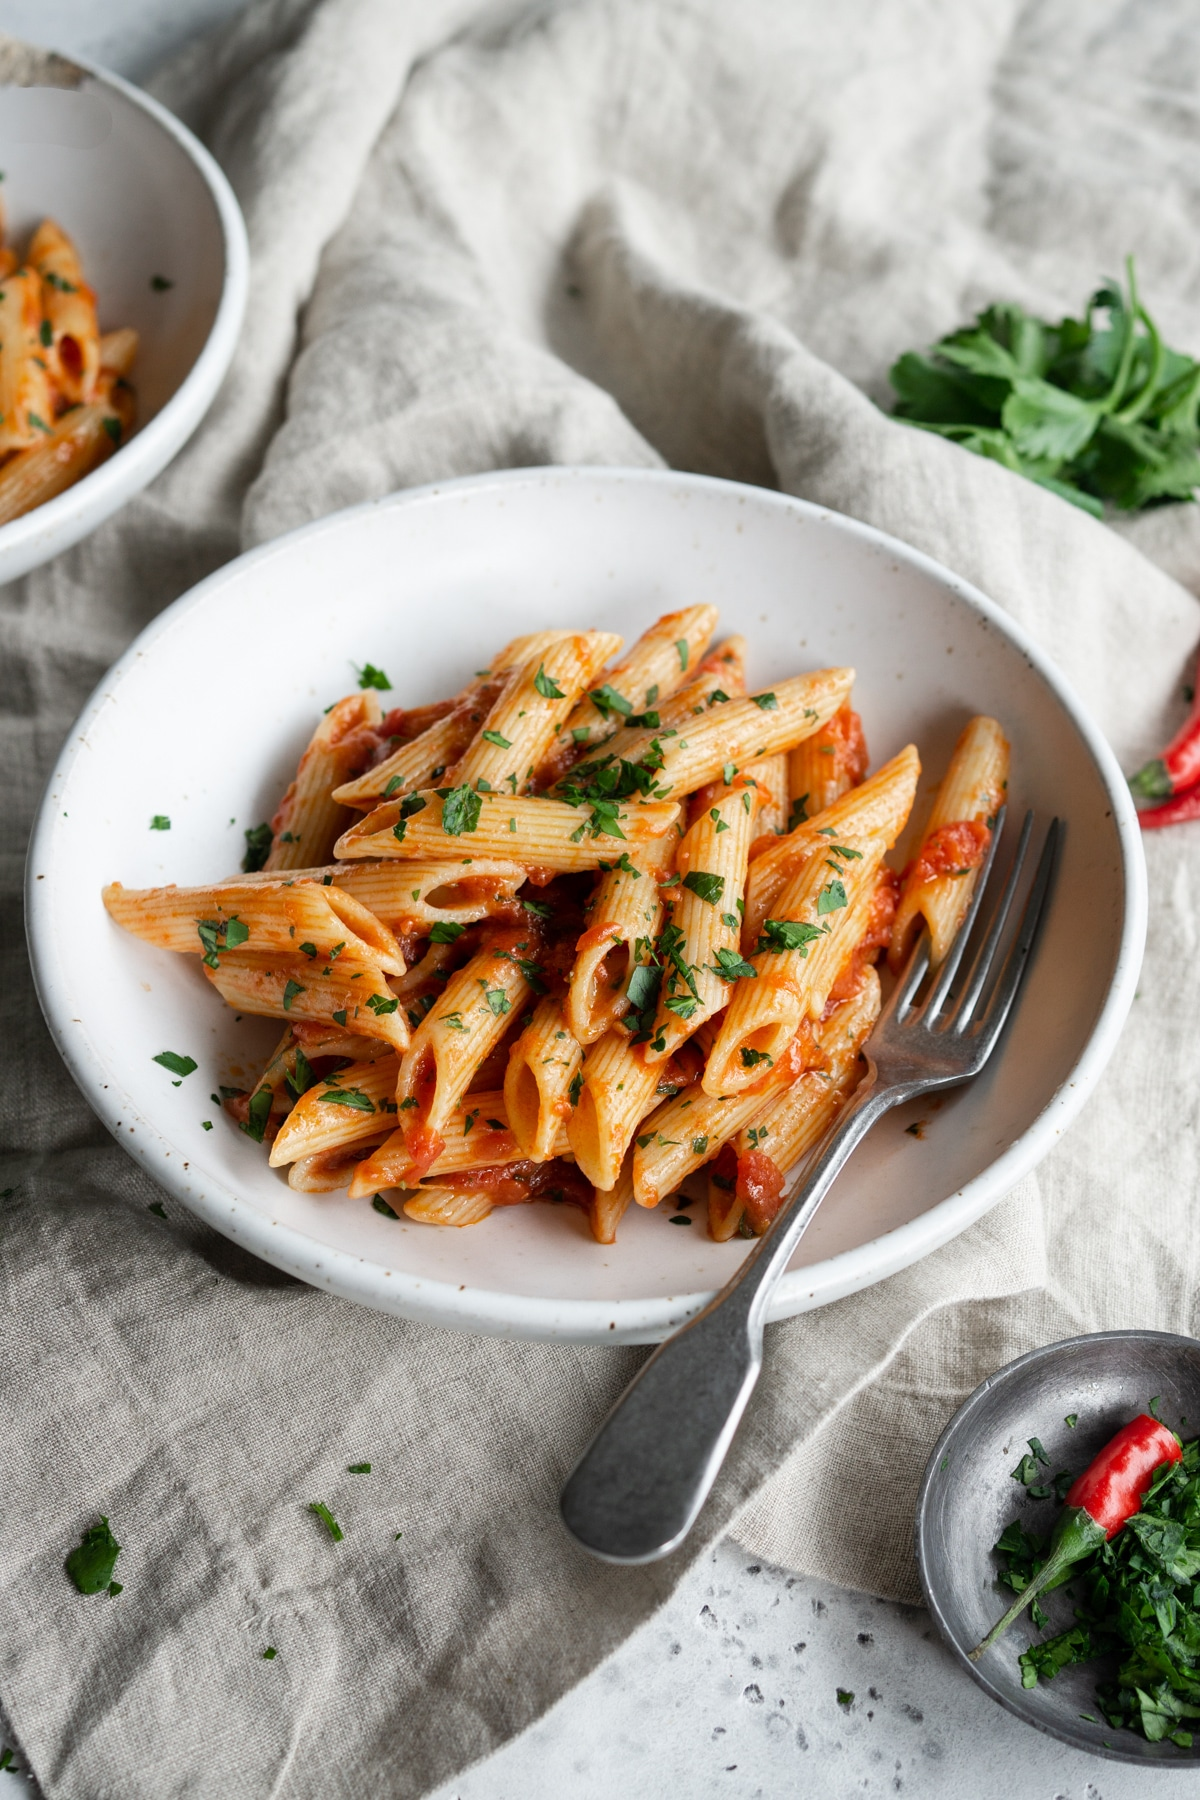 Bowl of penne arrabbiata on a linen napkin with parsley in the background